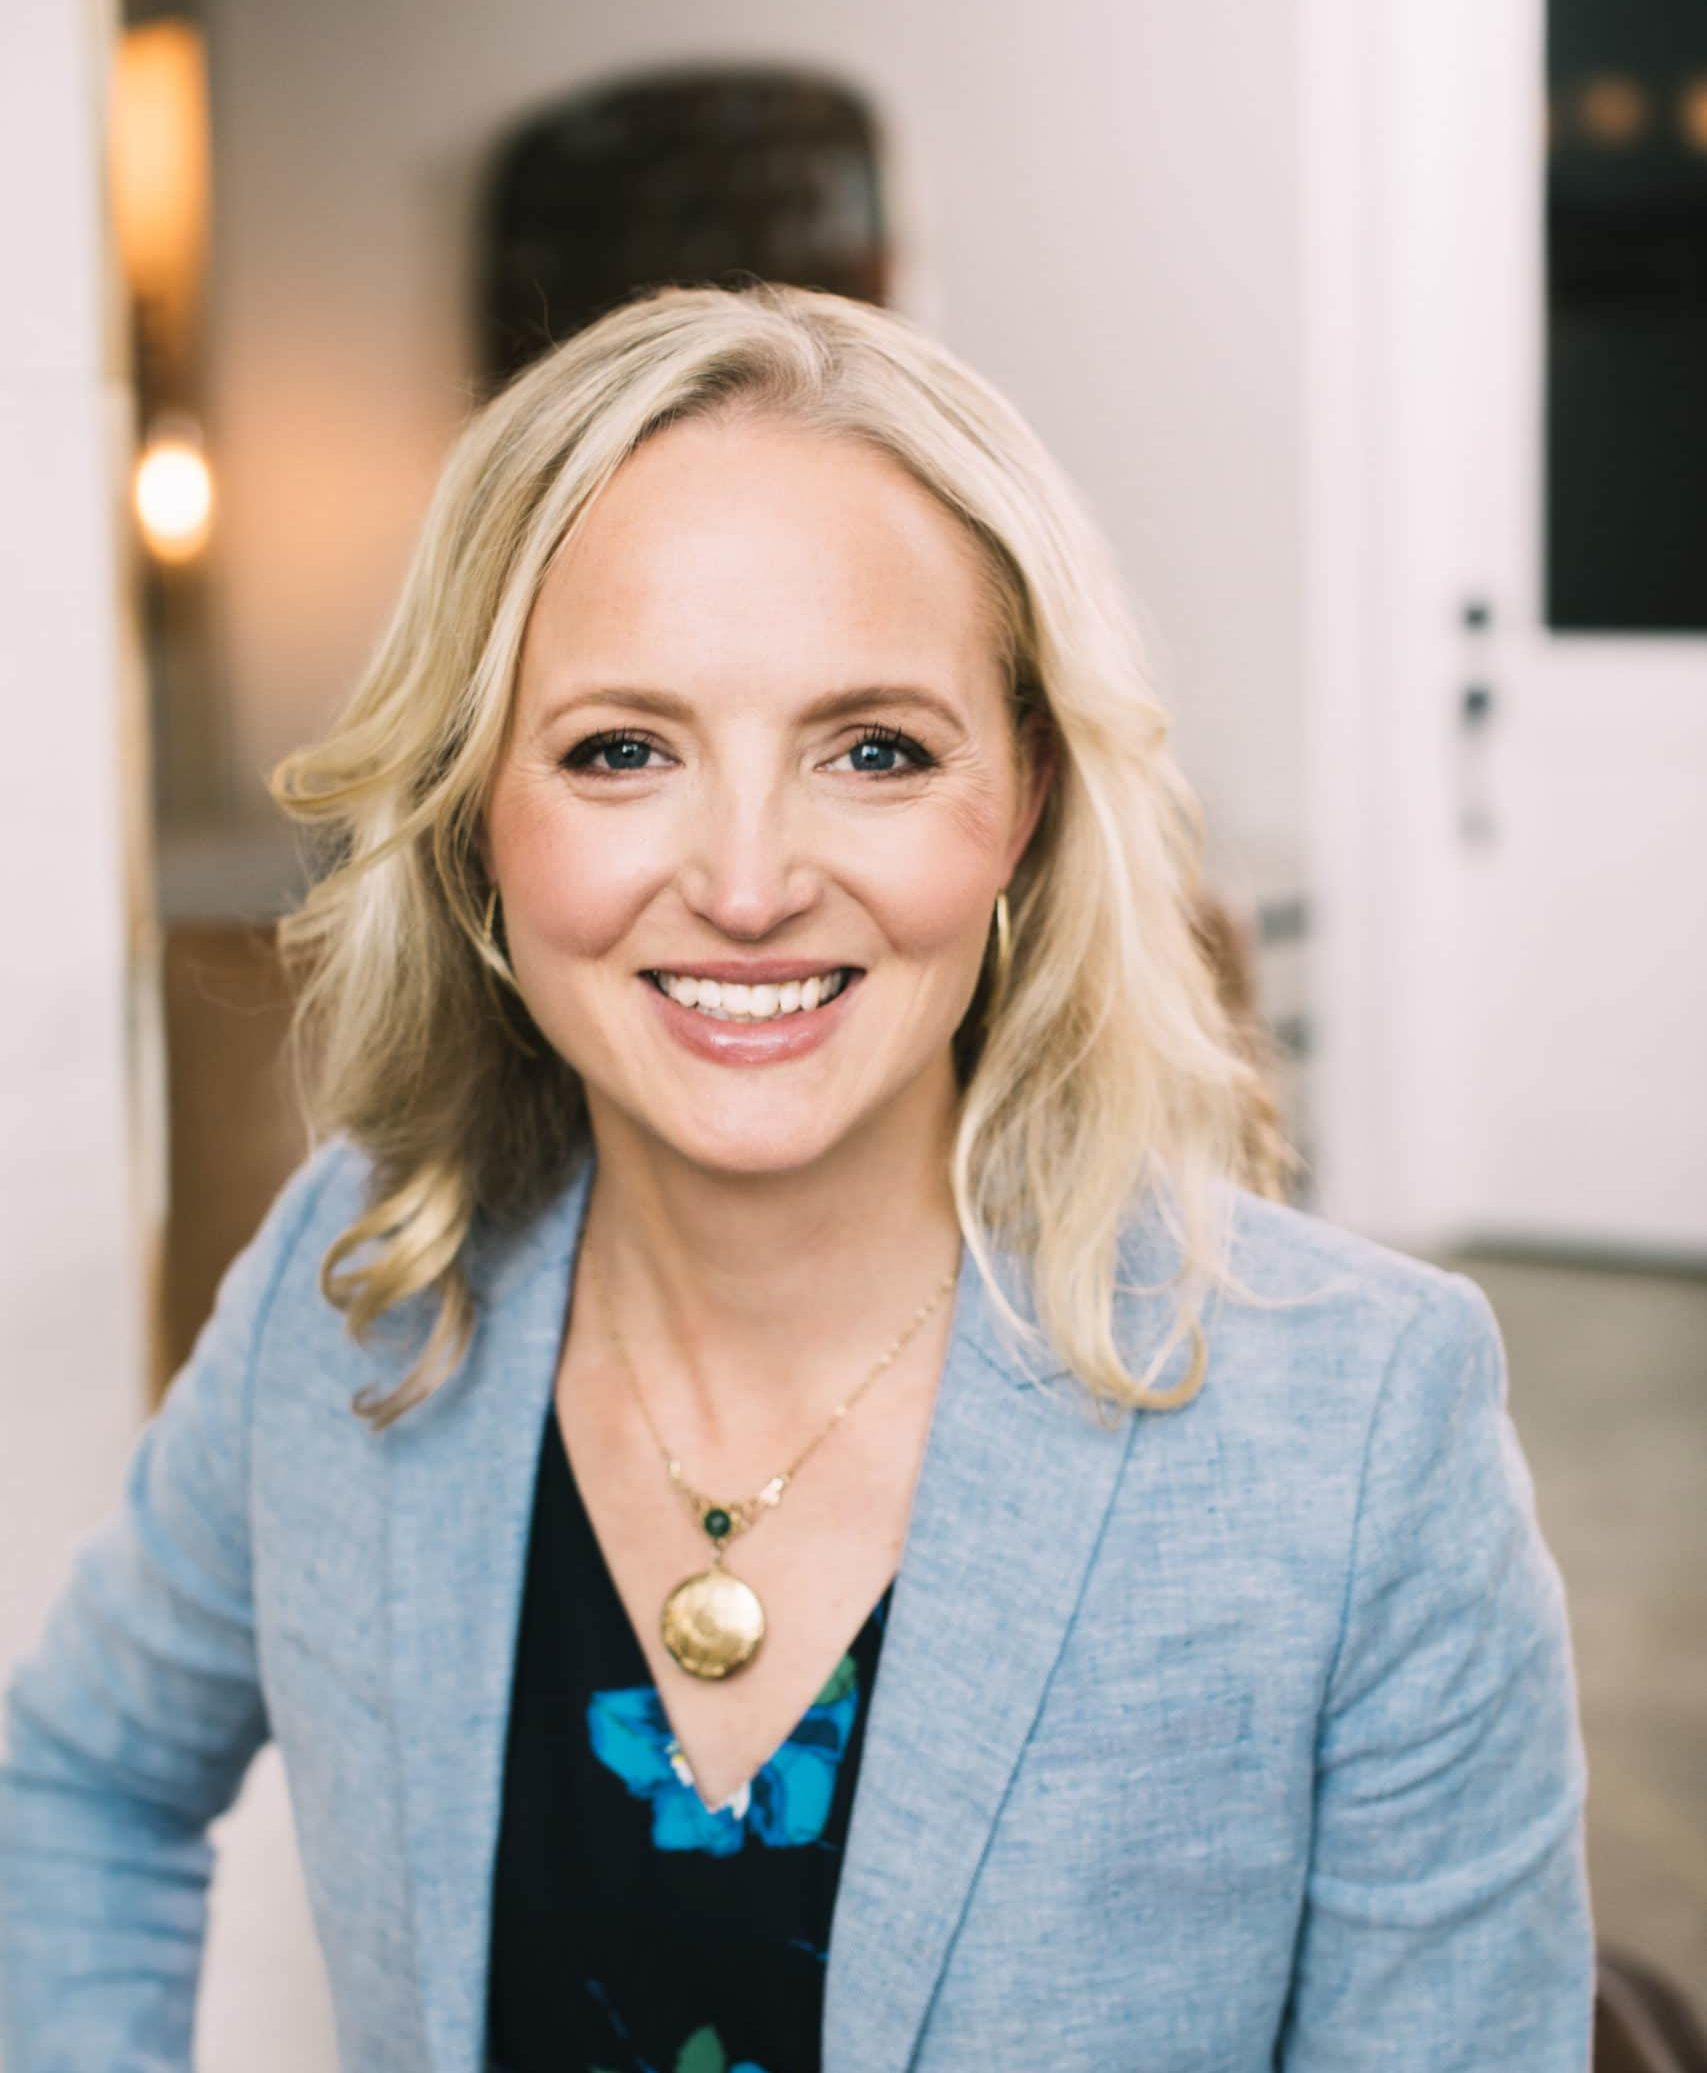 017: Jenni Catron with 3 Ways to Kickstart Your Company Culture